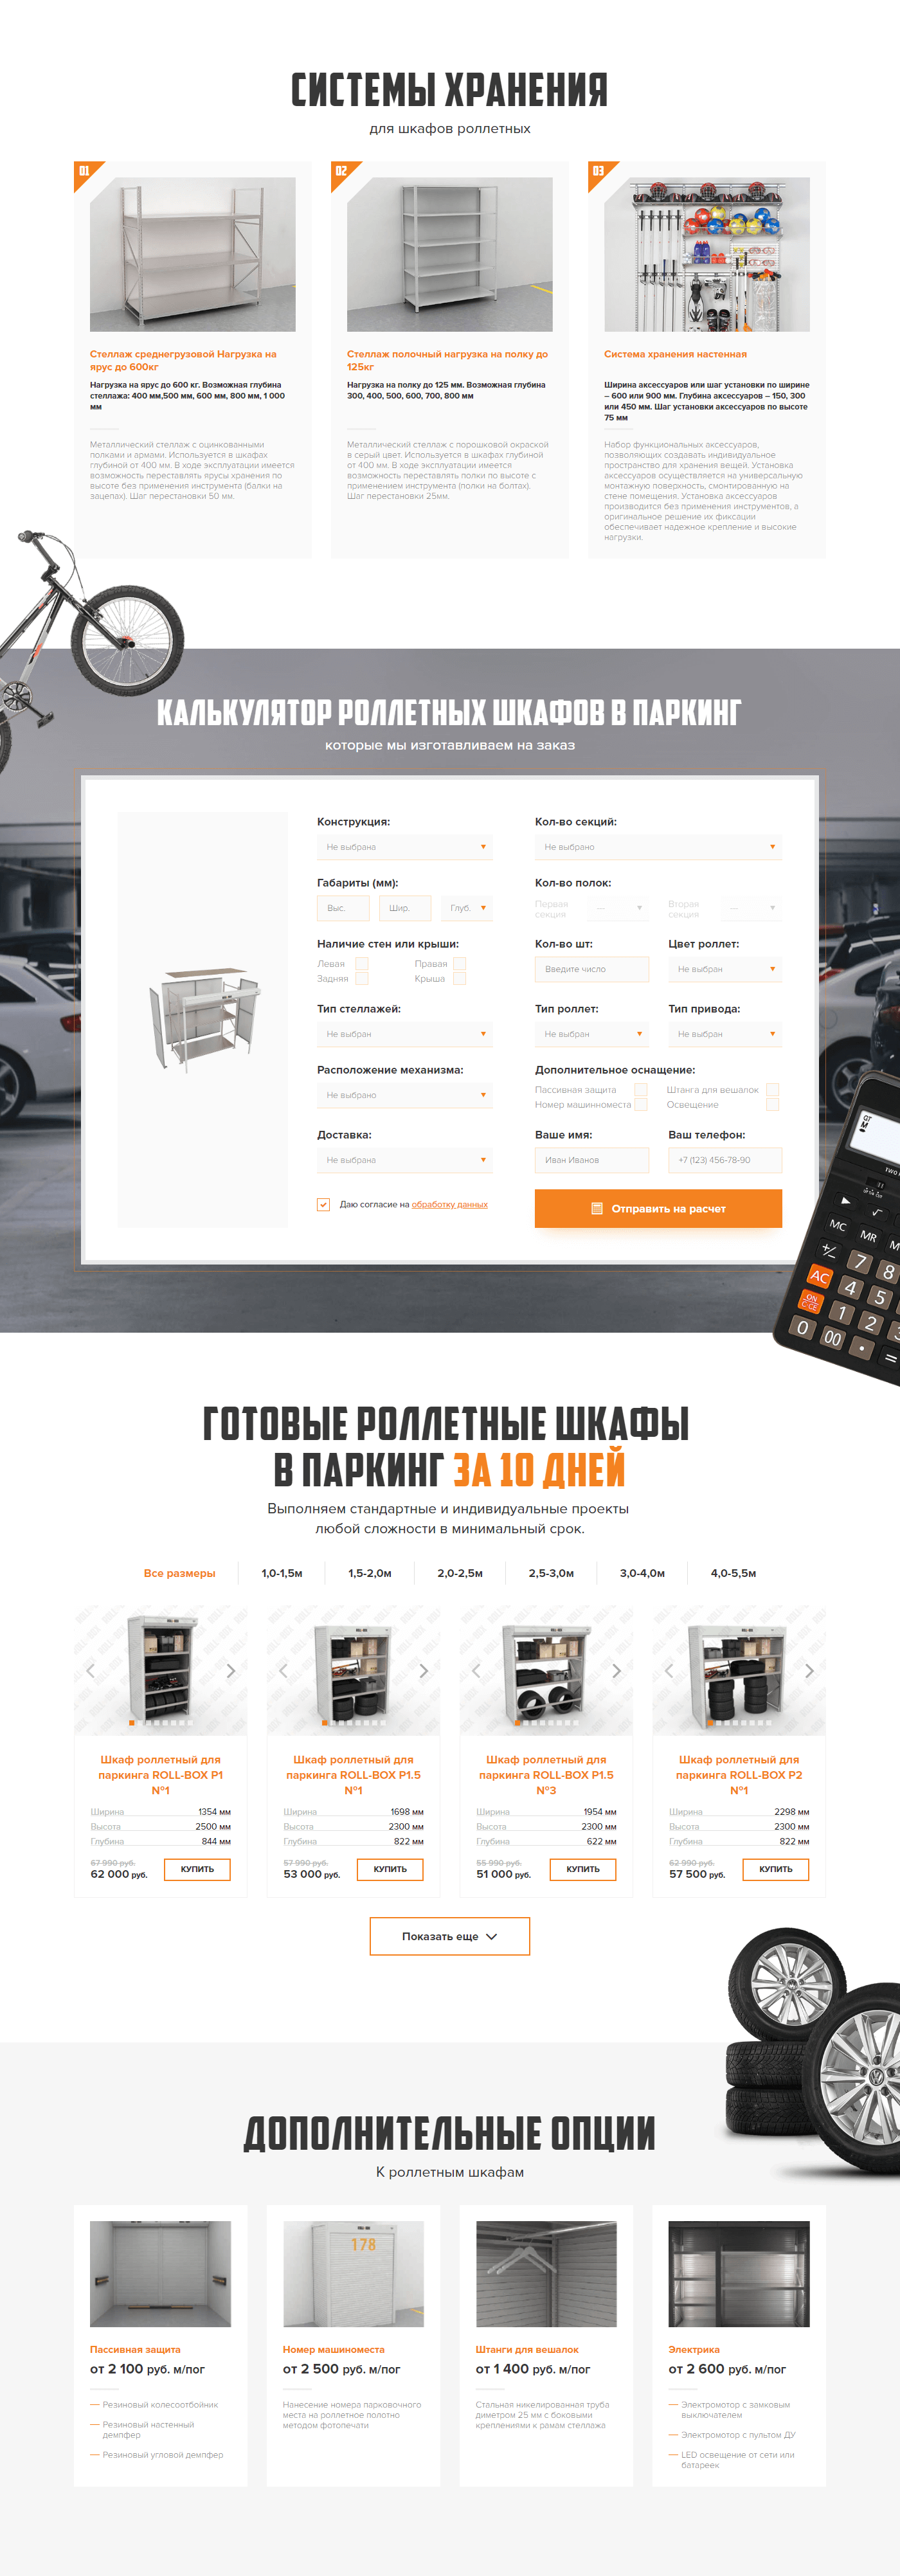 https://aleksinsky.ru/wp-content/uploads/2019/07/rollbox2.png